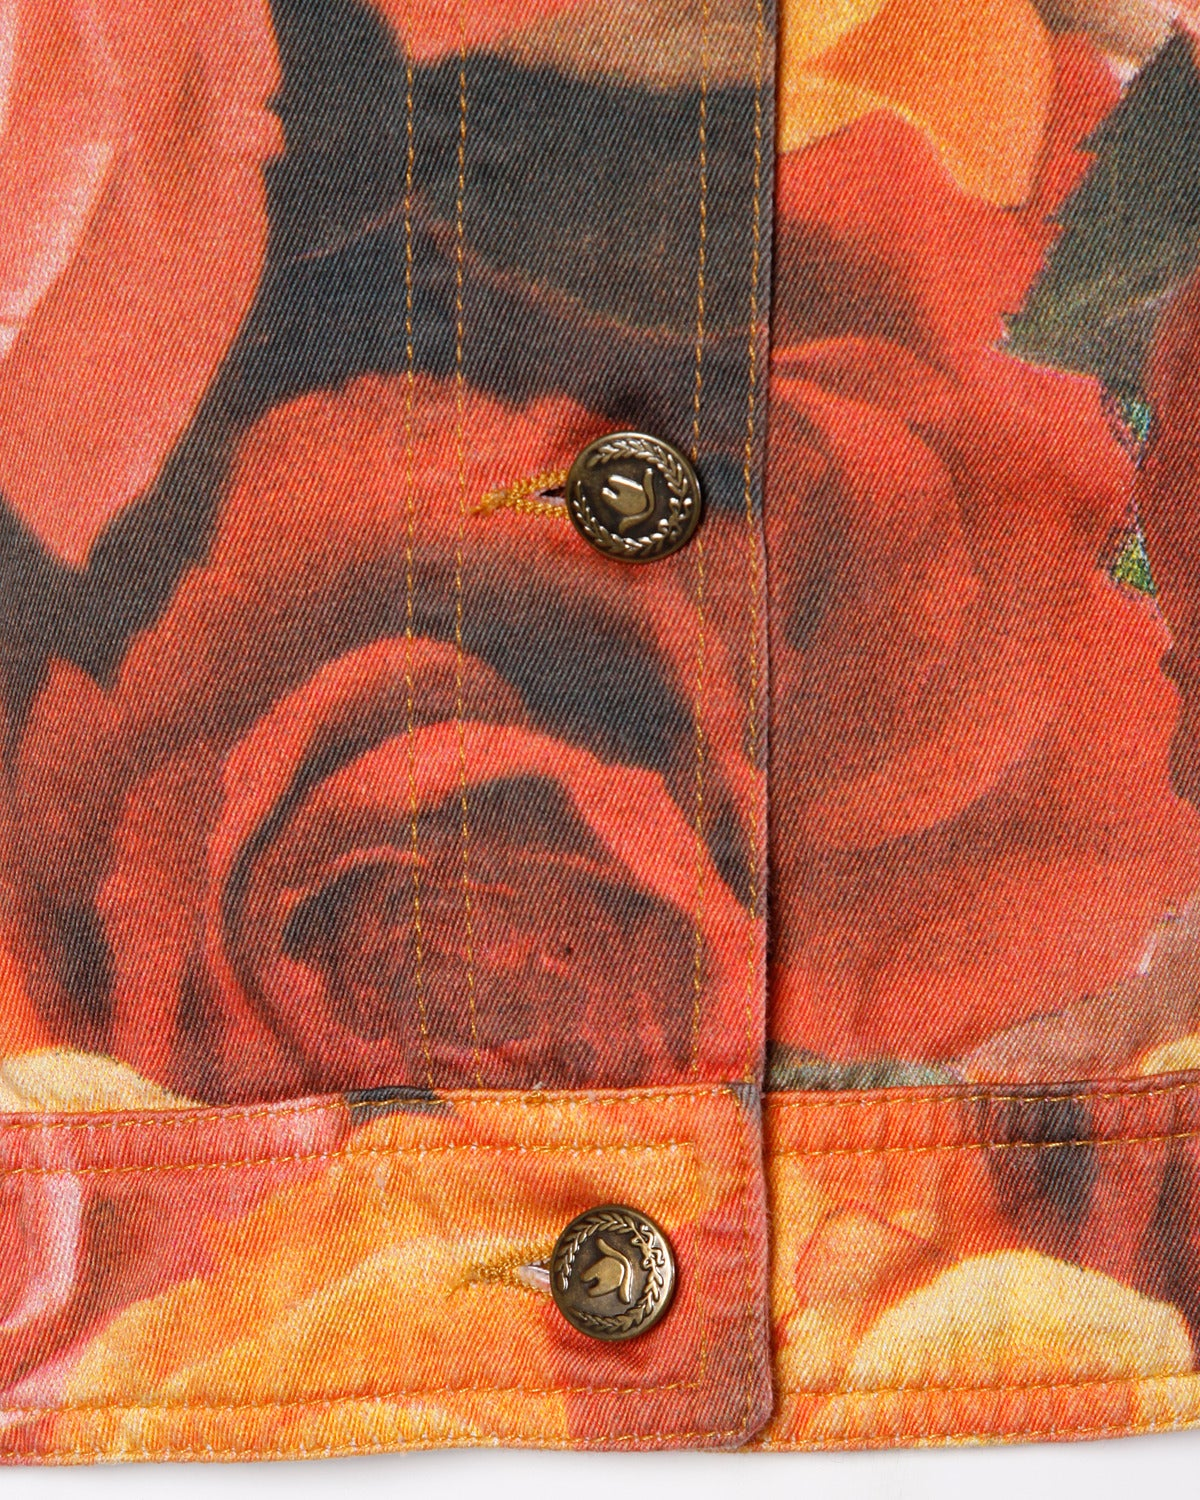 Women's Moschino Jeans Vintage Floral Photo Print Denim Jacket, 1990s  For Sale